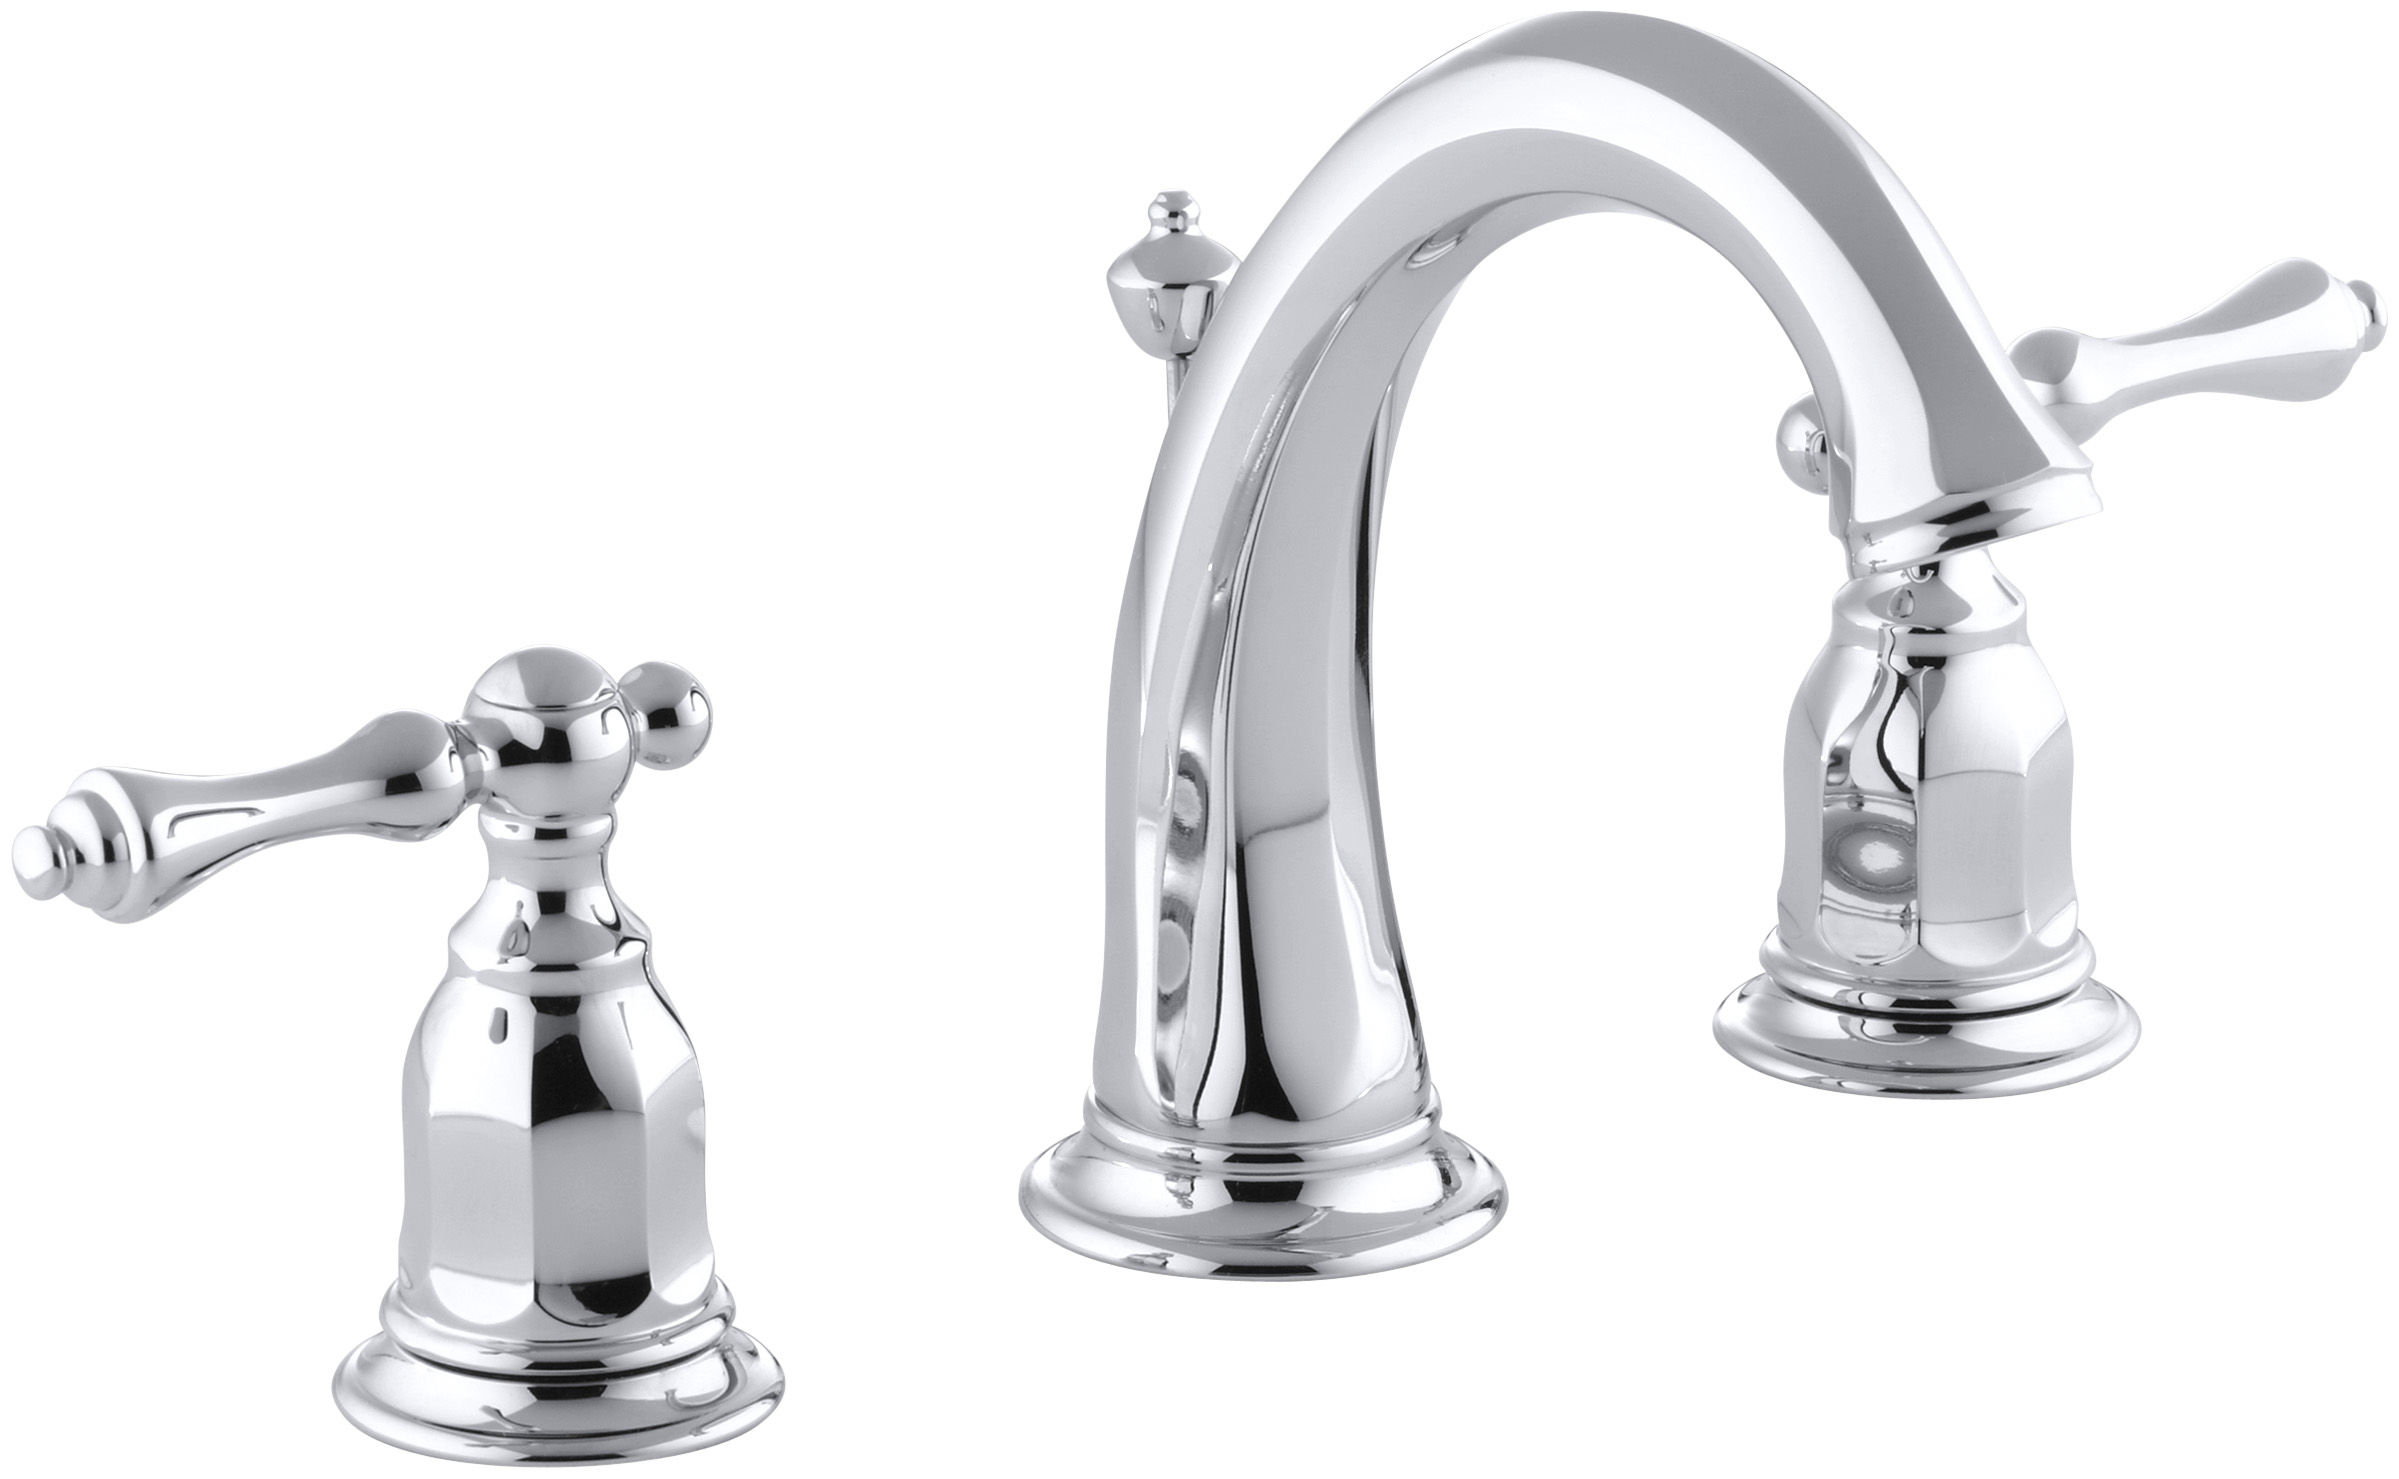 Kohler Bathroom Sink Faucets, Kohler Bath Sink Faucet